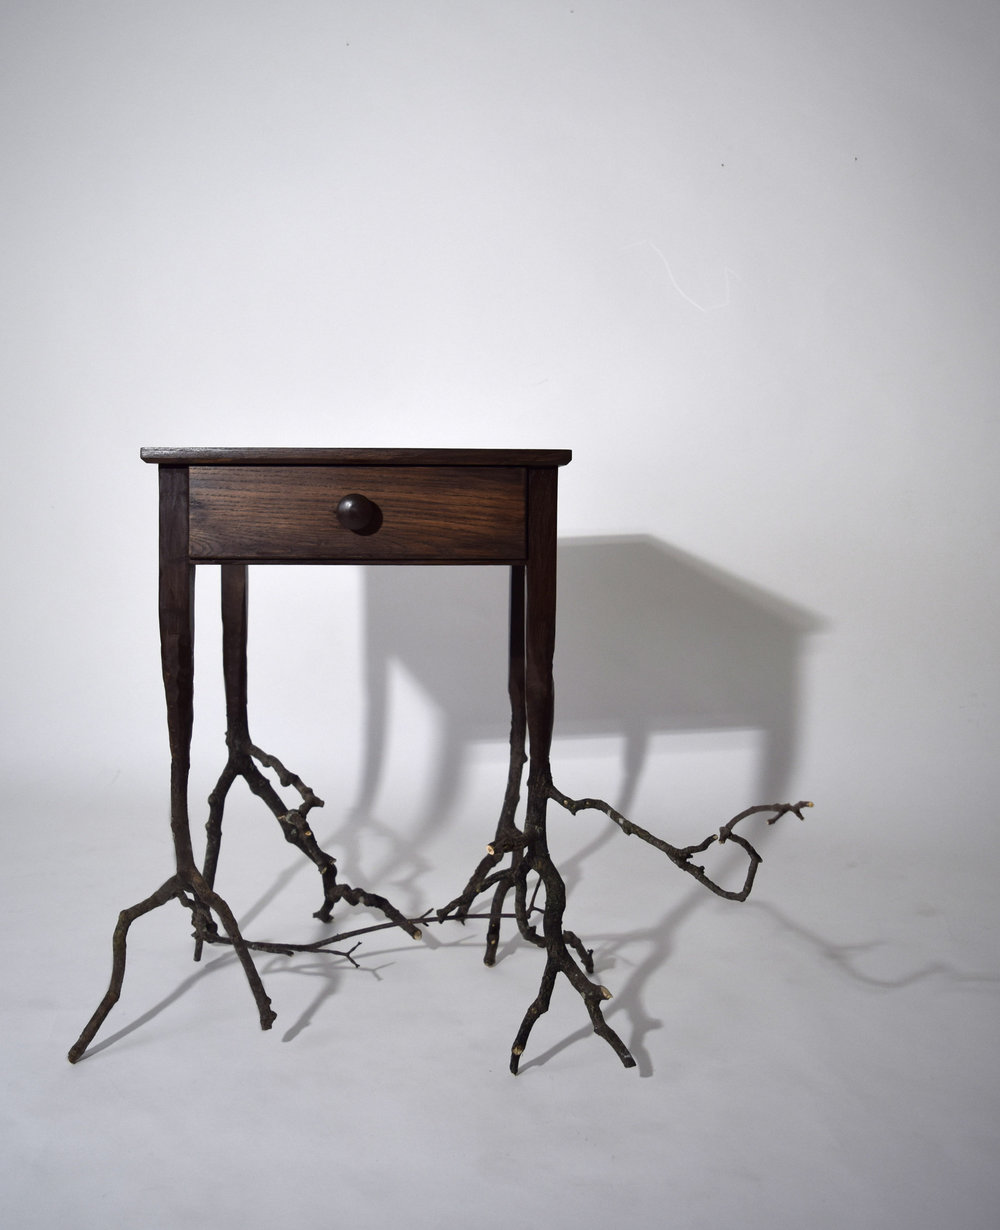 Rooted Side Table /   Ash, discarded street branches      Sometimes, we forget that the things we use, the furniture we surround ourselves with come from the mother nature and that they eventually will go back to her. It is a depleting cycle that we live in and so will it be for our children and our grandchildren. The top of the Rooted Side Table takes a form of an ordinary side table, transitioning down to what seems like the roots of the tree. It was created in collaboration with Brooke Osbourne, a student from Brown University, as a part of RISD x Brown STEAM project. Through the piece, we hoped that people would take a moment to think about the roots of the furniture we use, the objects we often take for granted and appreciate their values in our lives.